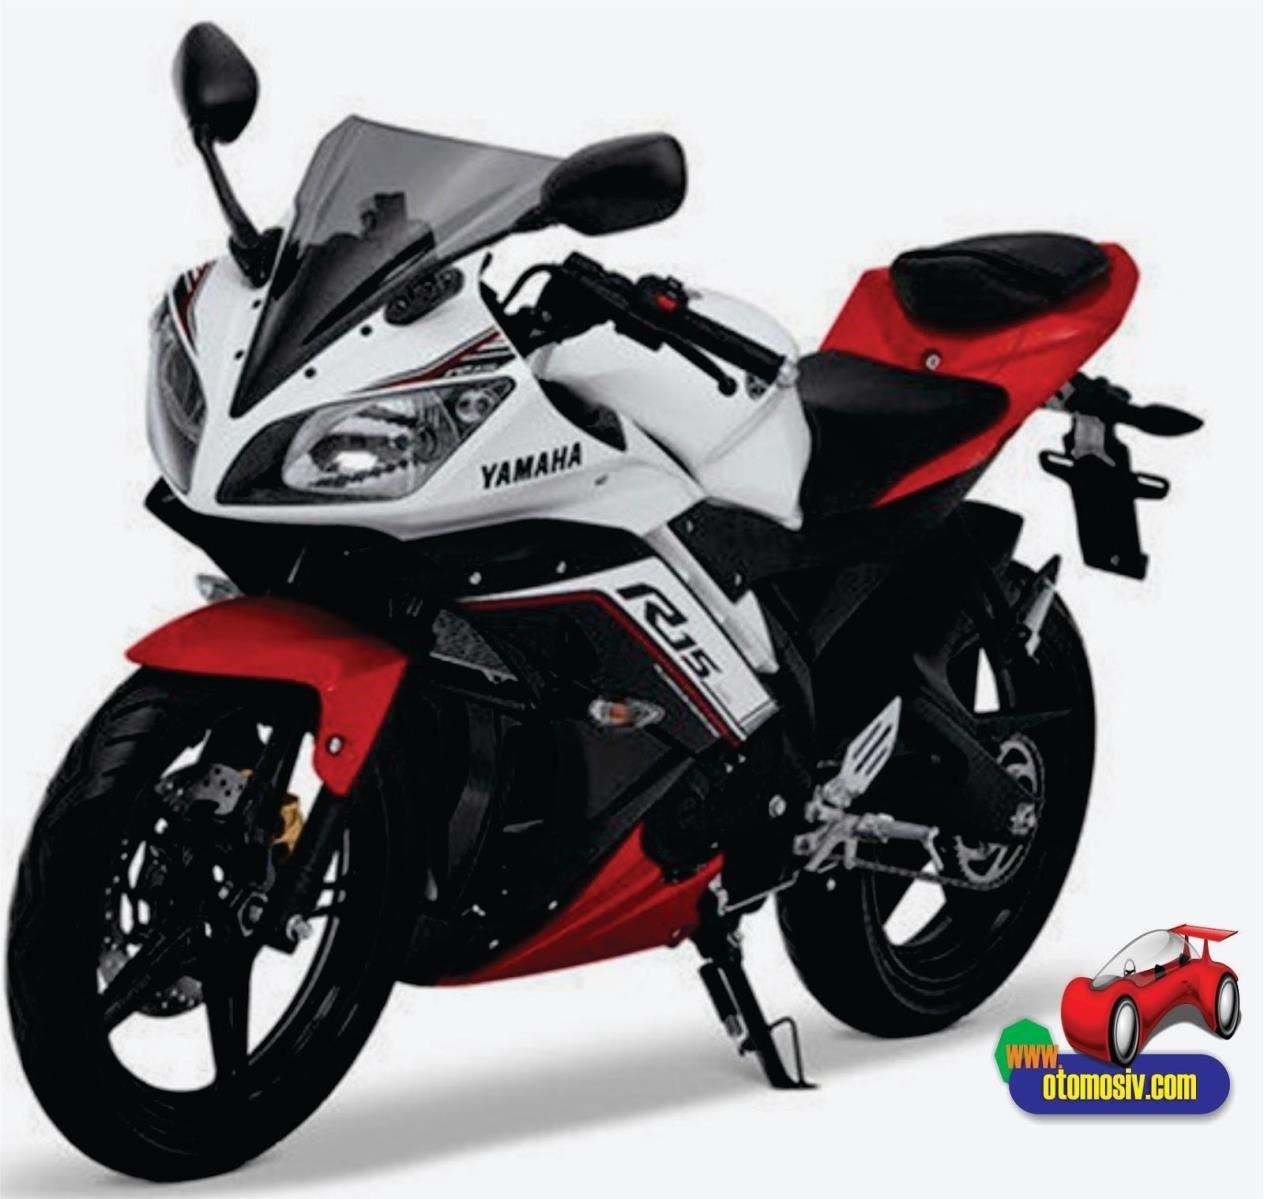 wallpaper bagus motor r15 2017 warna